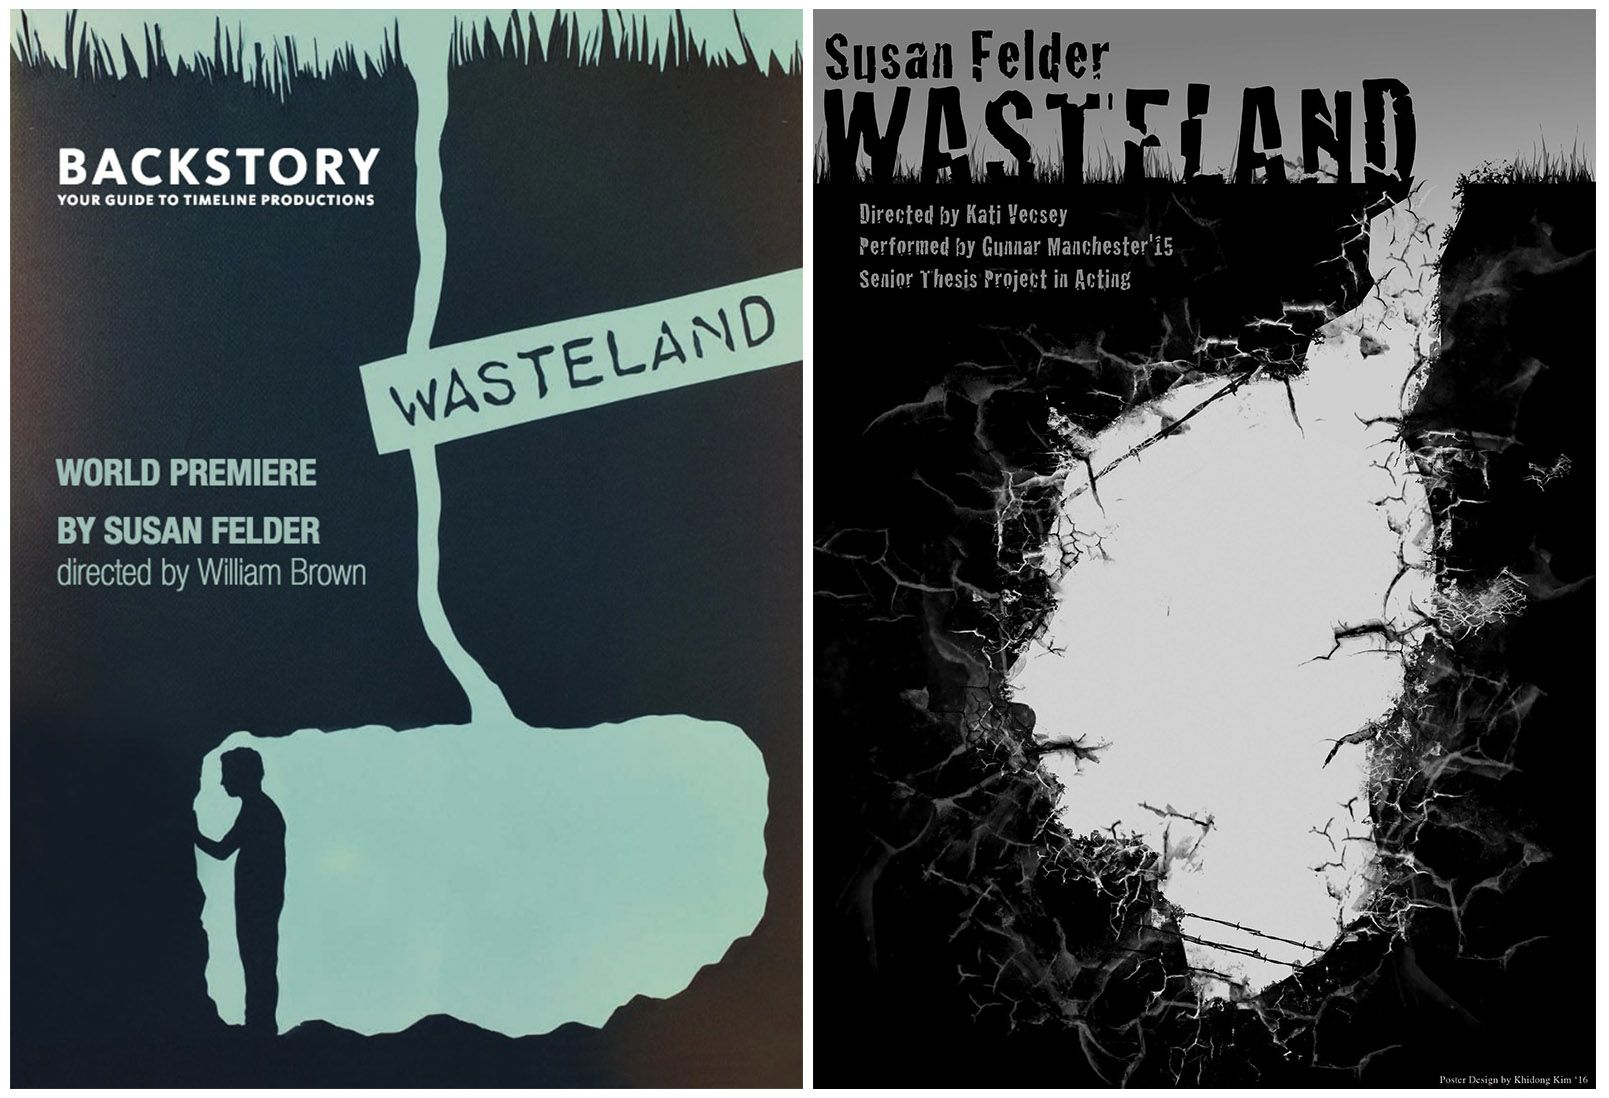 Poster design maker - A Creative Case Study The Poster For Wasteland